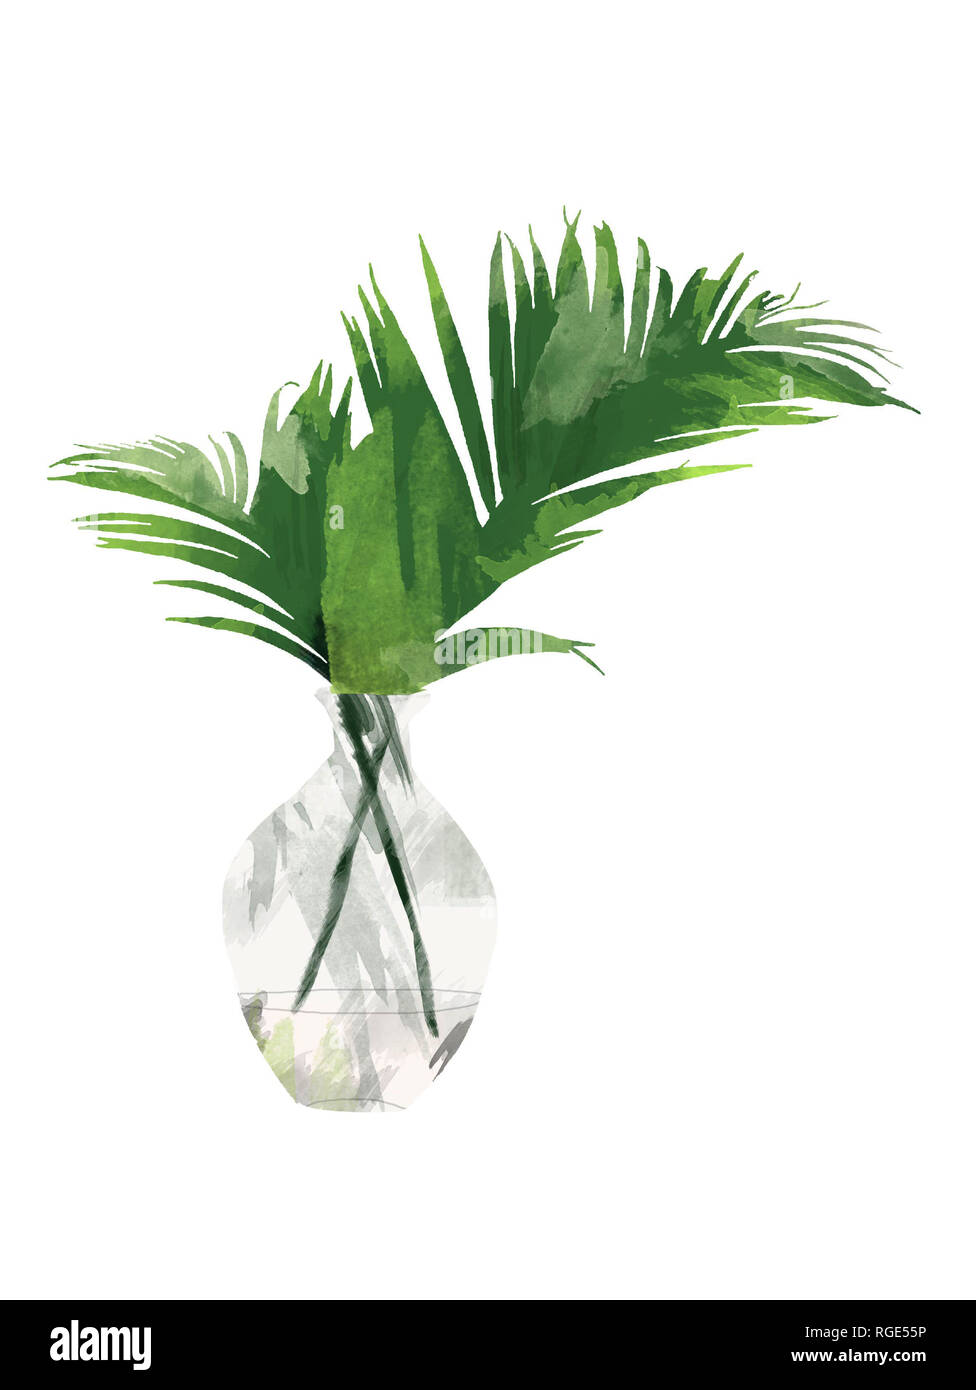 Hand painted tropical Areca palm leaf in the bottle or vase isolated on white background. Floral botanical clip art for design or print - Illustration - Stock Image